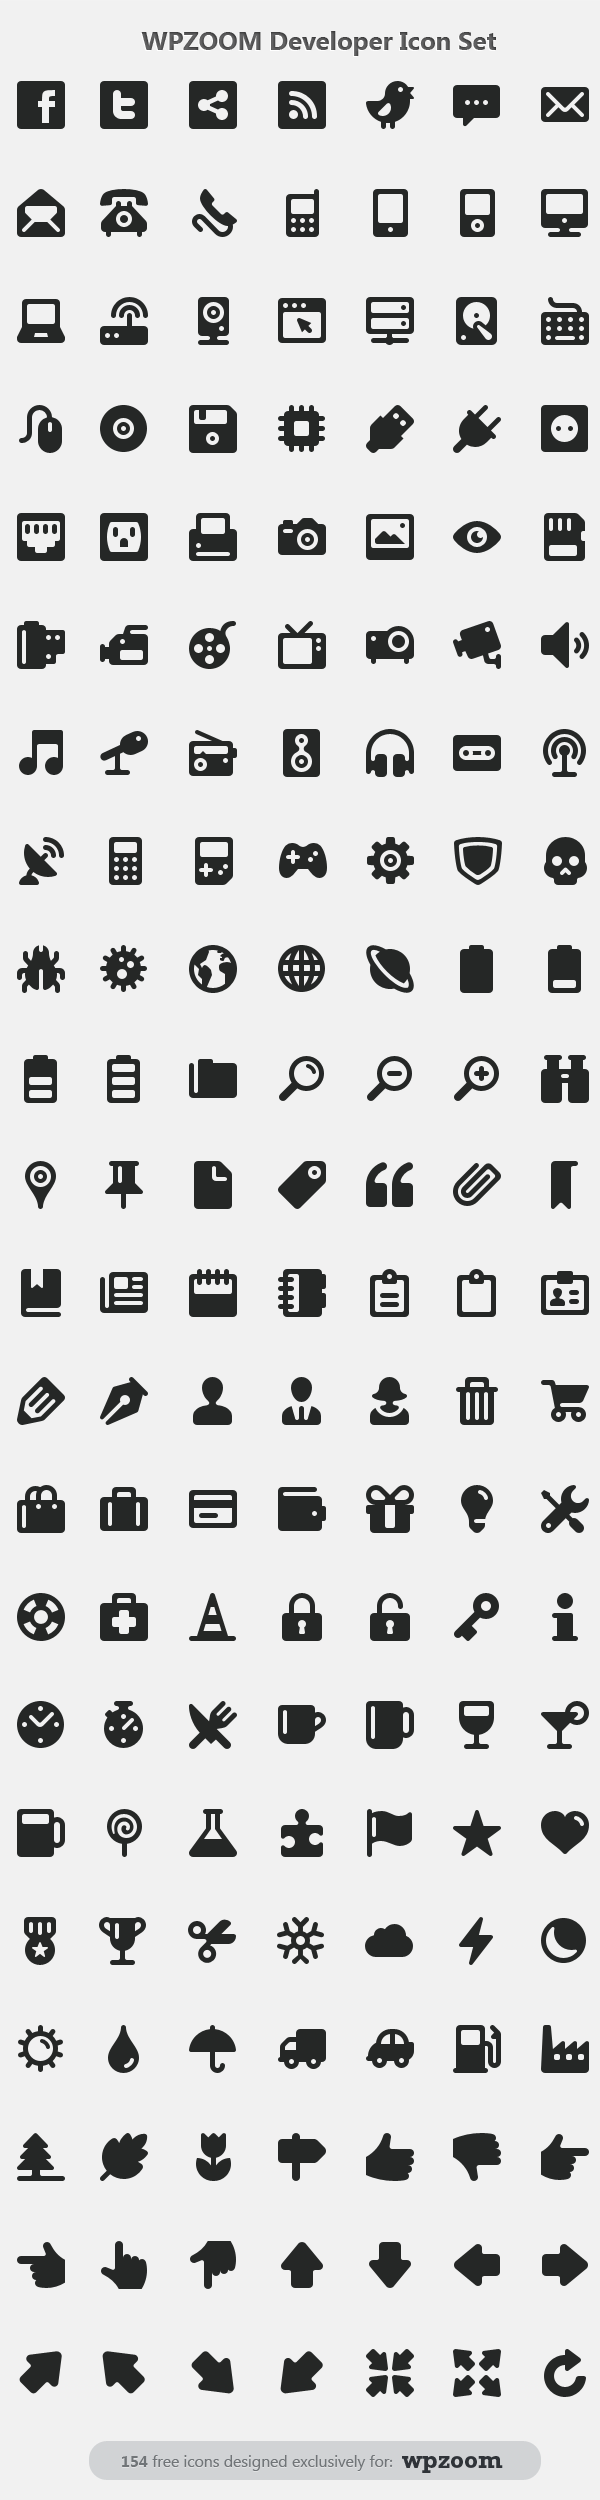 154 free developer icon set in PNG and PSD format | sharehouse ...